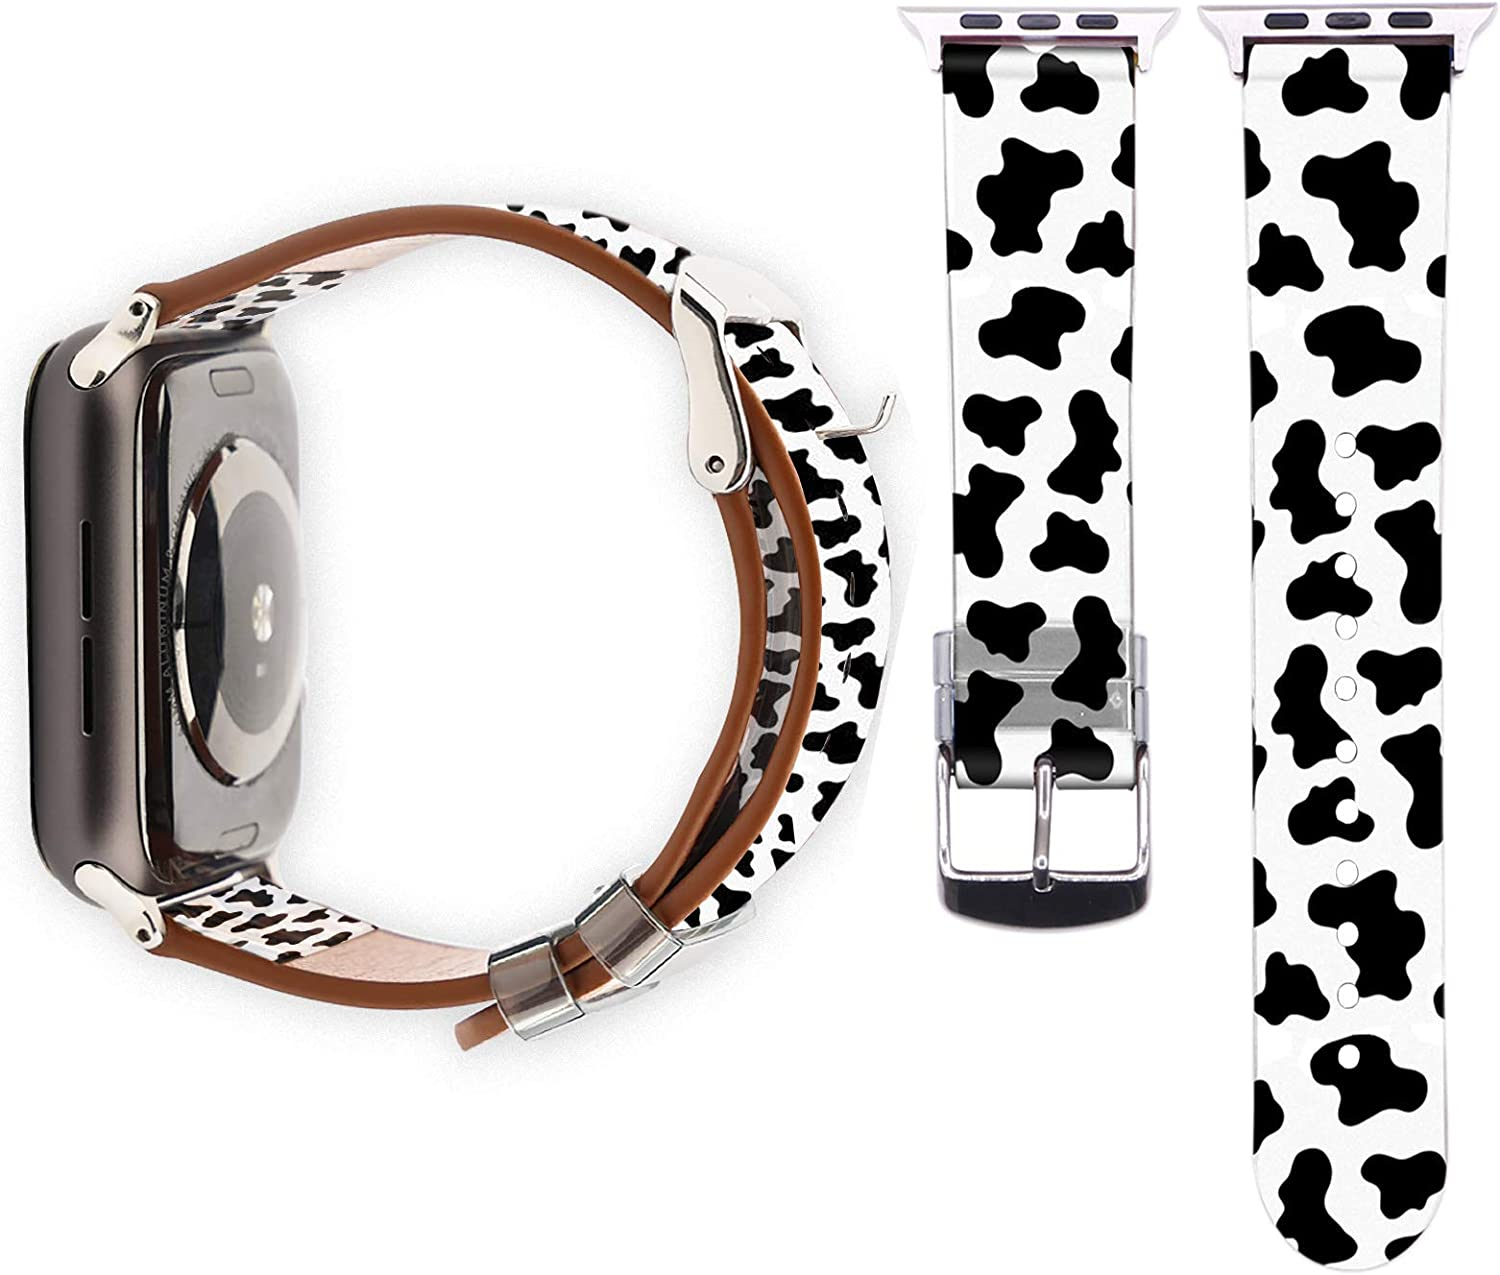 YSNUO Cartoon Cute Compatible with Apple iWatch Band 38mm 40mm/42mm 44mm, Soft Leather Watch Band Replacement Strap Women Men for iWatch 6 SE Series 5 4 3 2 1 + Silver Adapter